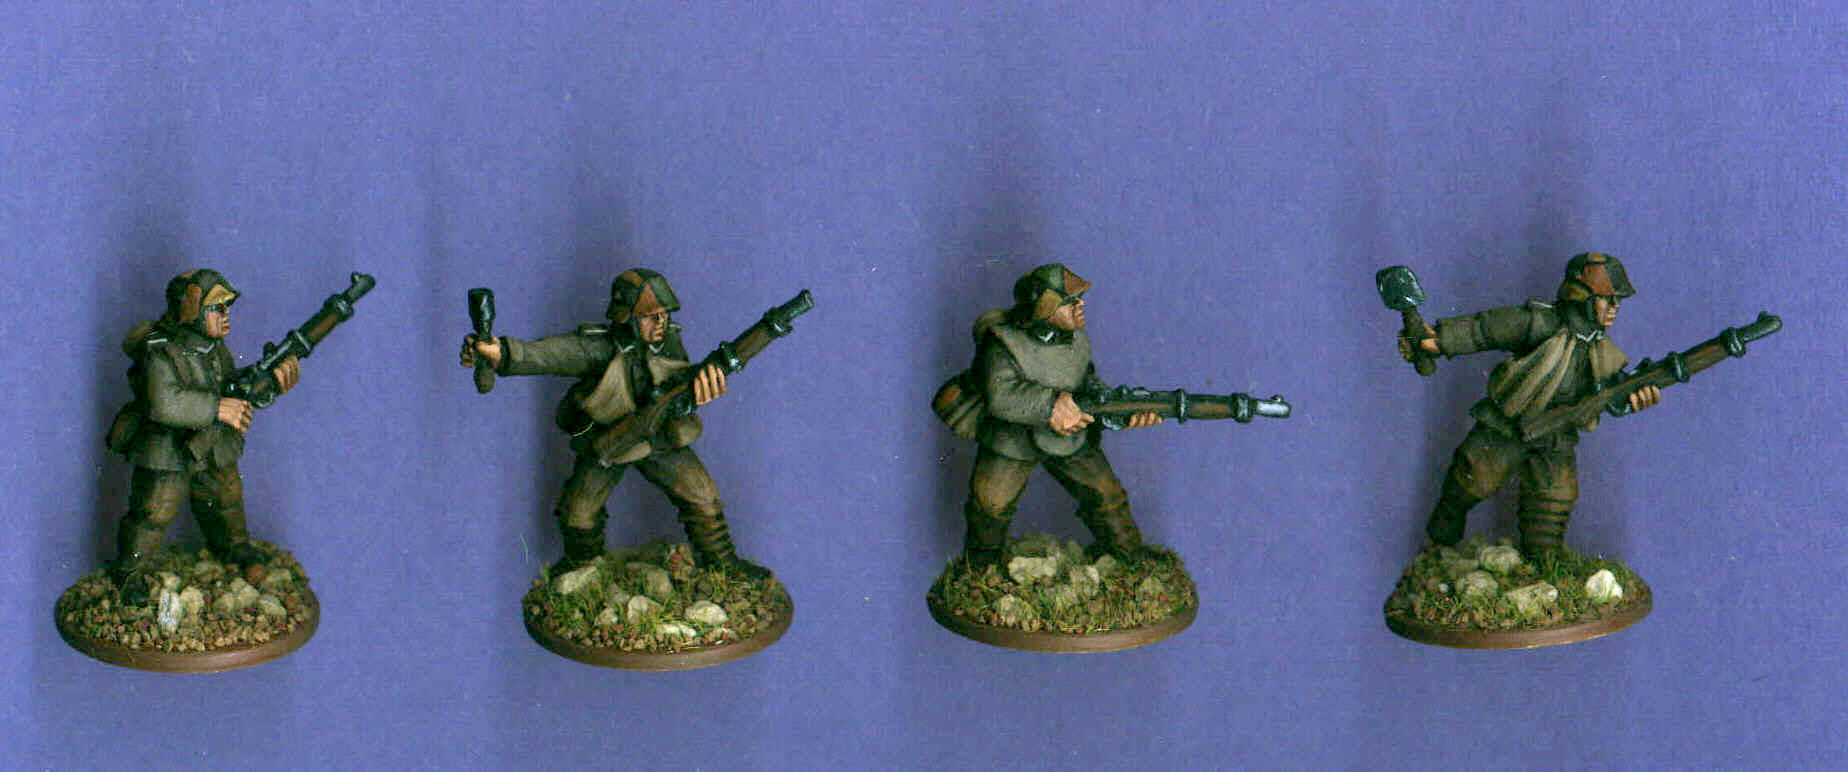 BG-WIWG05 German Stormtrooper Trench Fighters I (8)